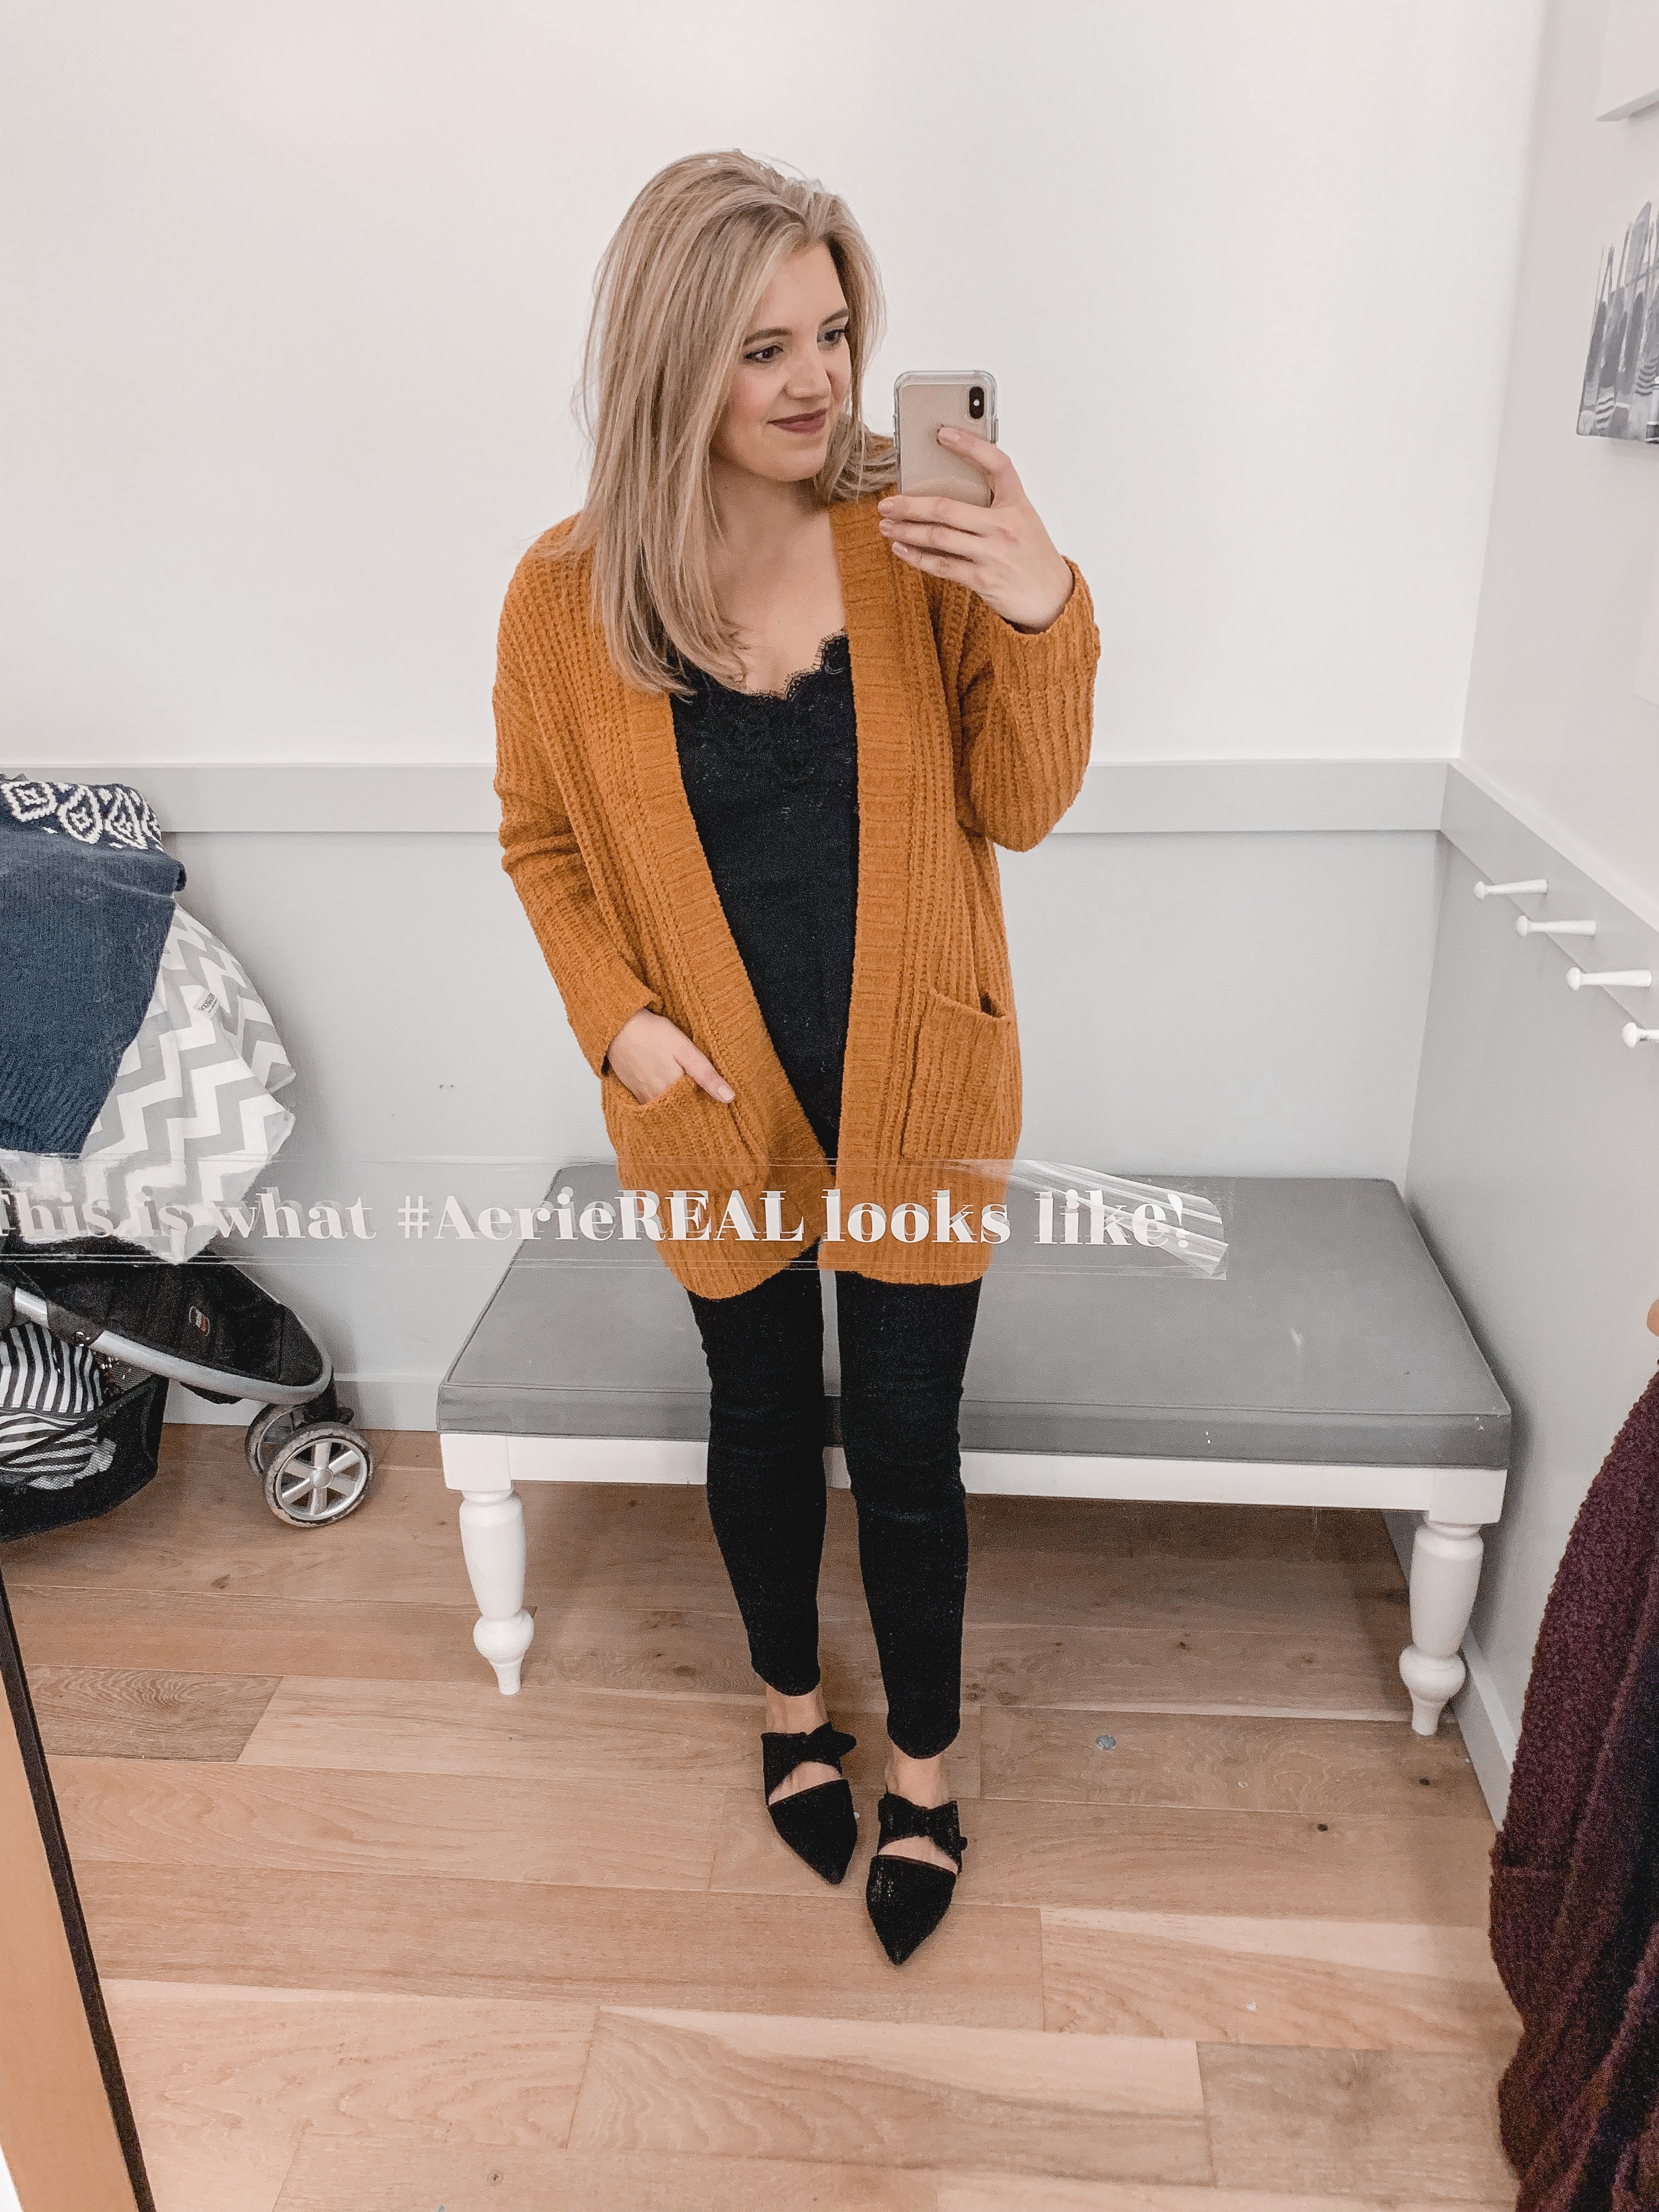 fall and winter american eagle aerie try-on session: 25 items reviewed for fit and style! See them all at bylaurenm.com